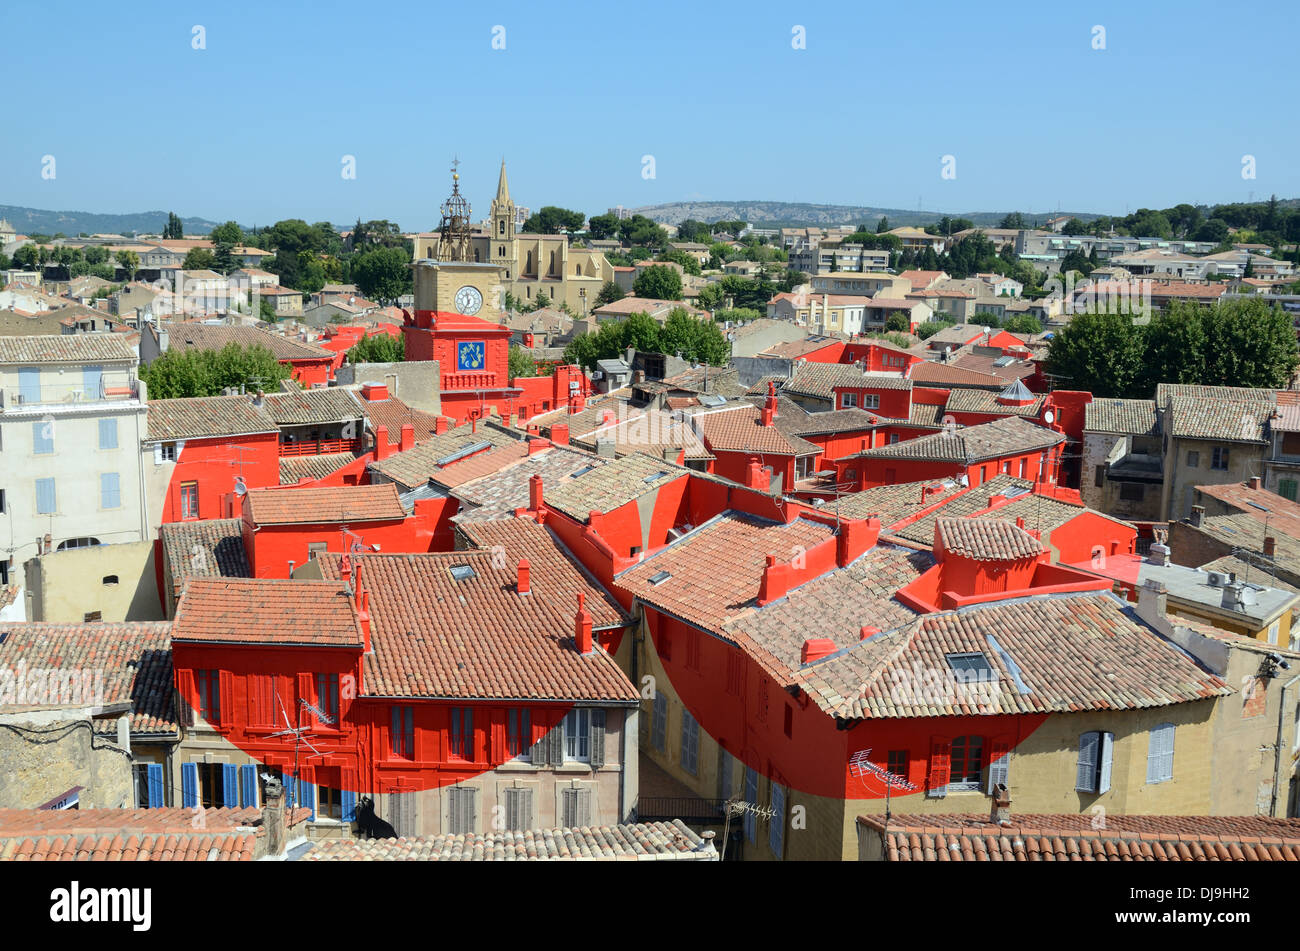 View over salon de provence painted red art installation for Kia salon de provence